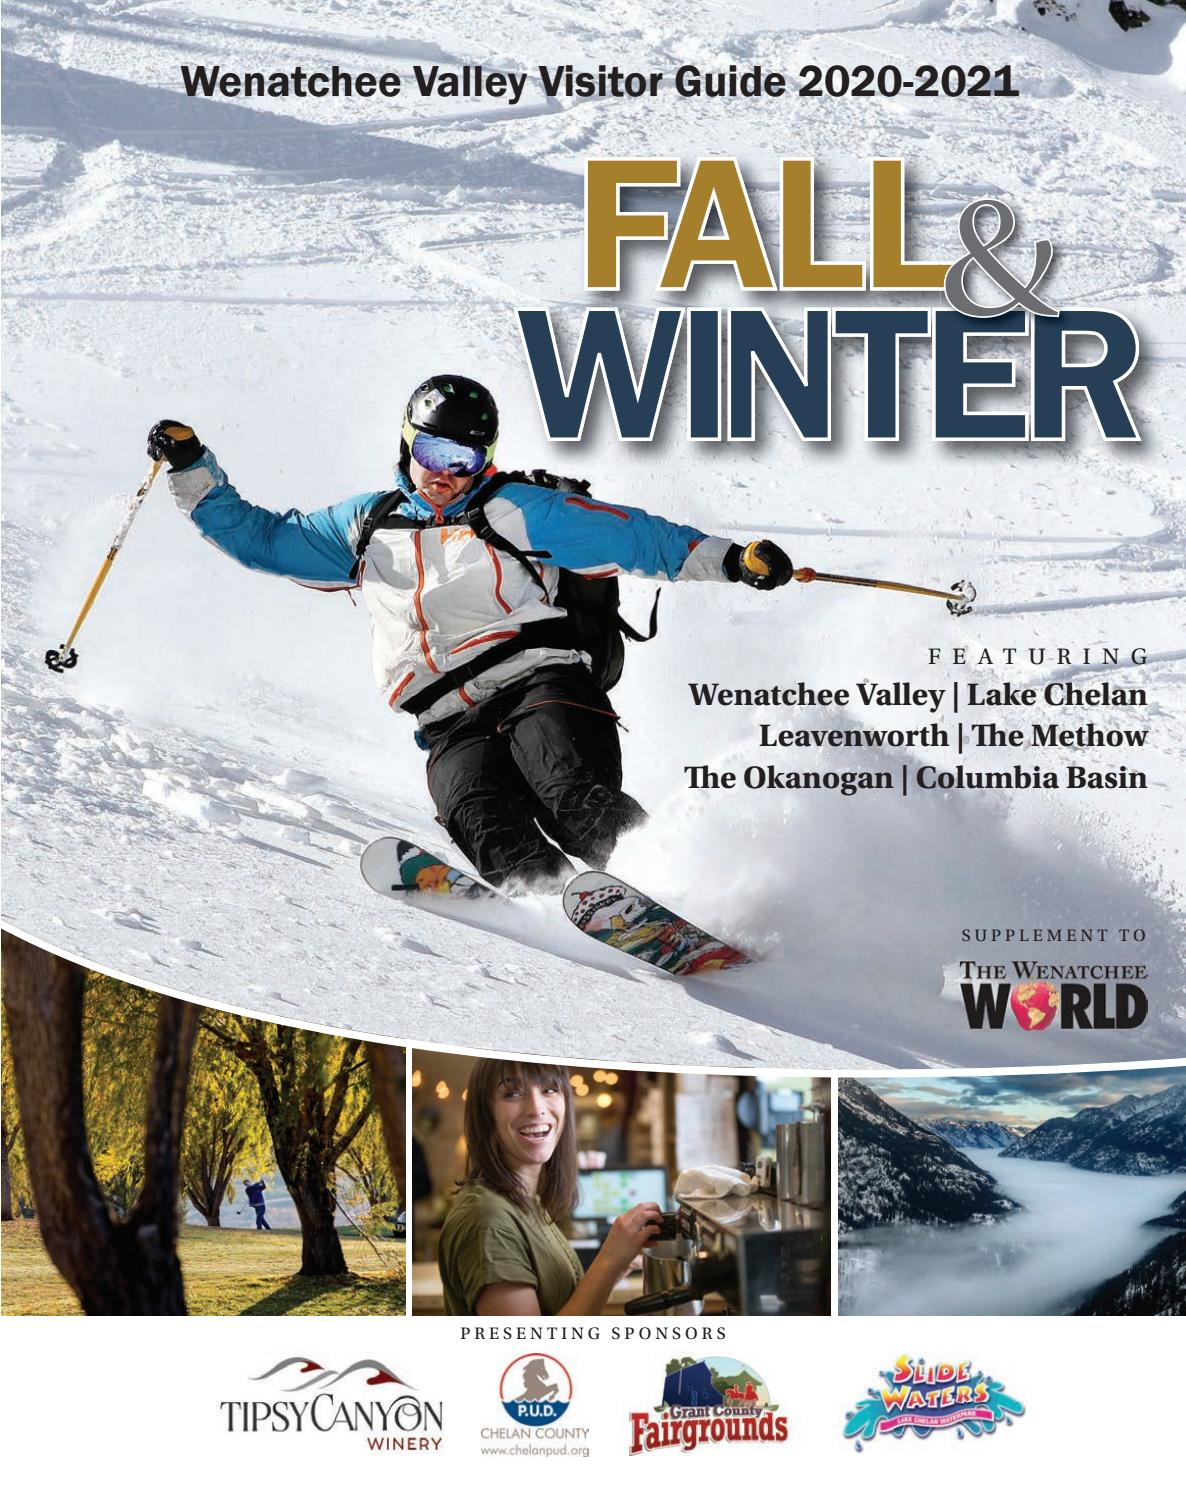 Wenatchee Valley Visitor Guide 2020 2021. Fall & Winter. by The